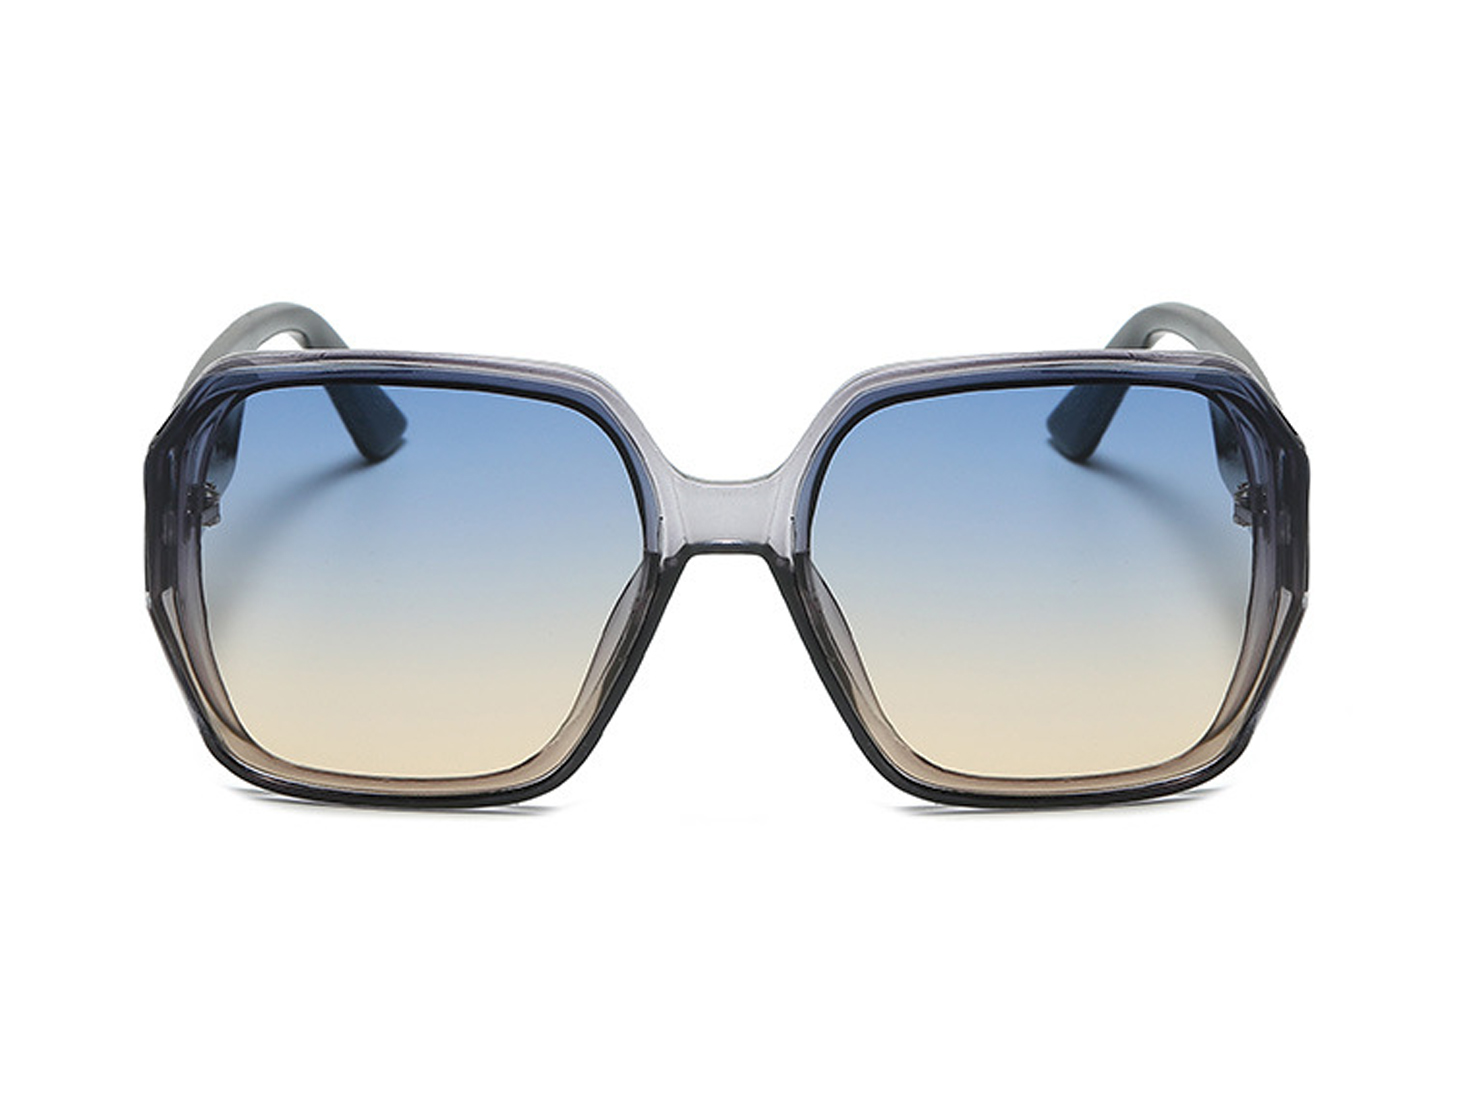 Yellowish Oversized Square Sunglasses - Blue gradient to yellow - Front